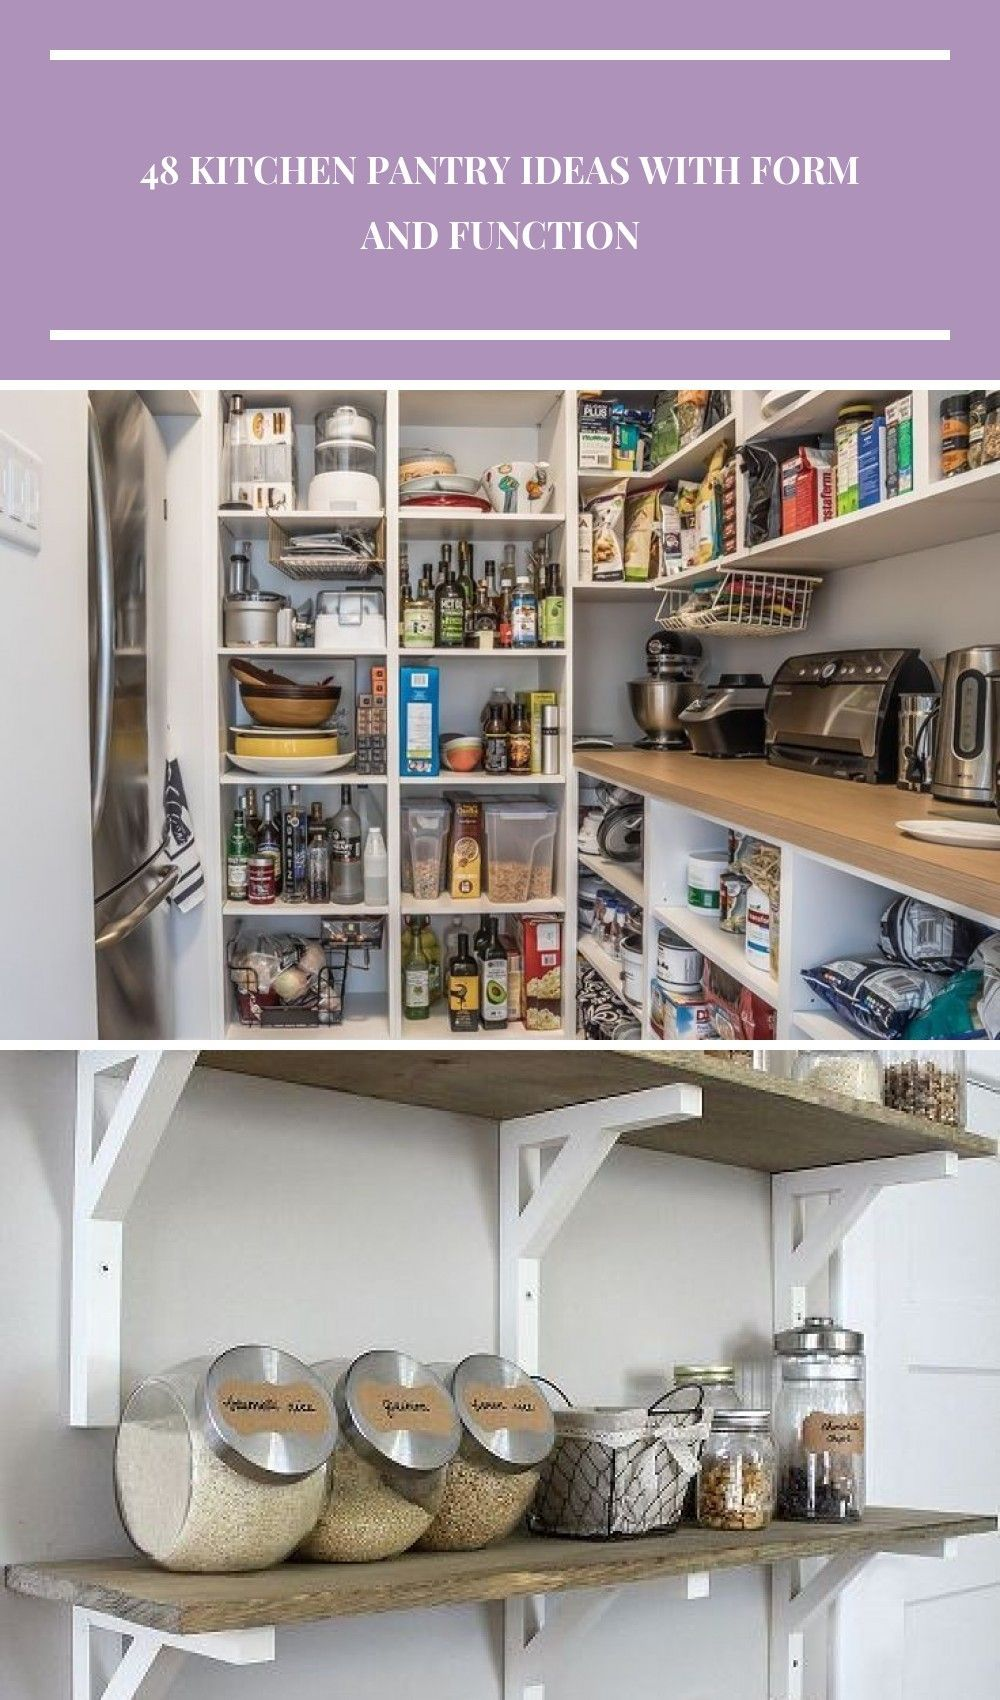 Awesome large kitchen pantry ideas  #pantry #pantryorganization #pantry #pantryorganization #kitchenpantry #kitchenstorage Küchenaufbewahrung 48 Kitchen Pantry Ideas with Form and Function #largepantryideas Awesome large kitchen pantry ideas  #pantry #pantryorganization #pantry #pantryorganization #kitchenpantry #kitchenstorage Küchenaufbewahrung 48 Kitchen Pantry Ideas with Form and Function #largepantryideas